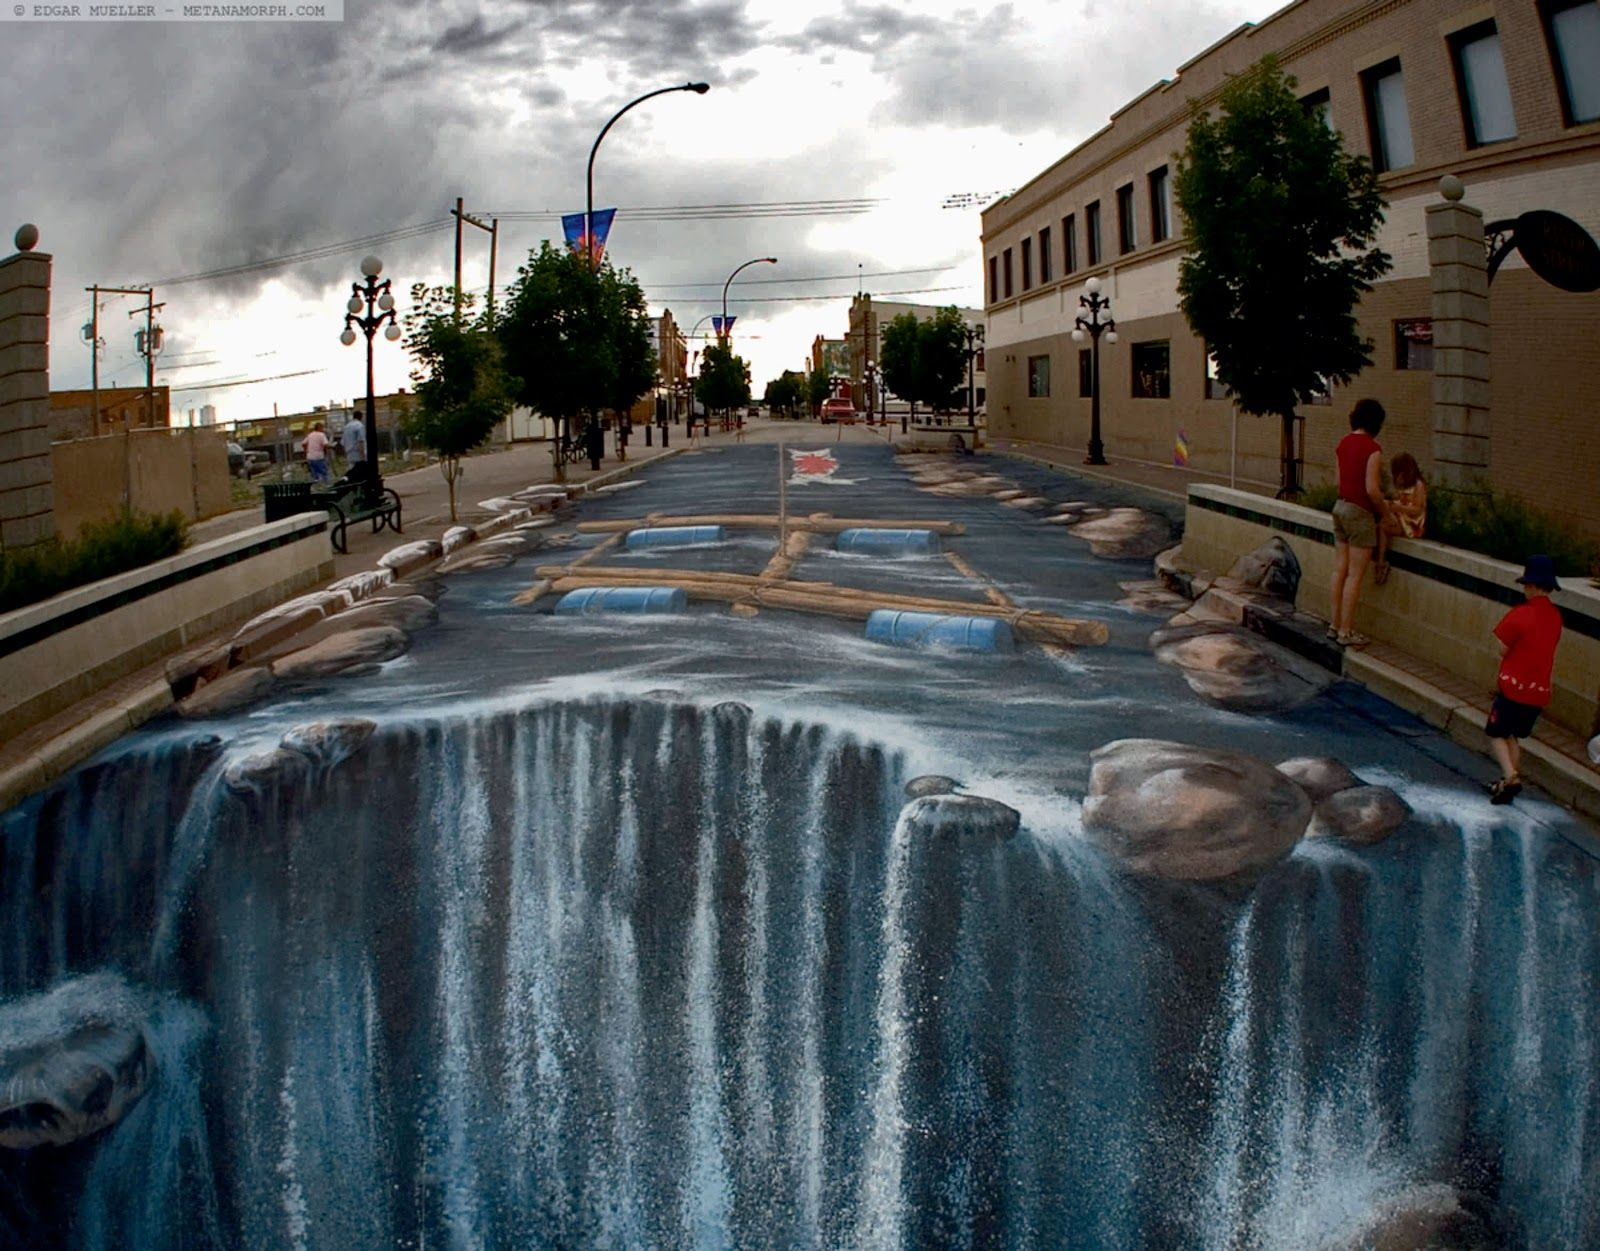 17 Best images about Street Art on Pinterest | Optical illusion ...